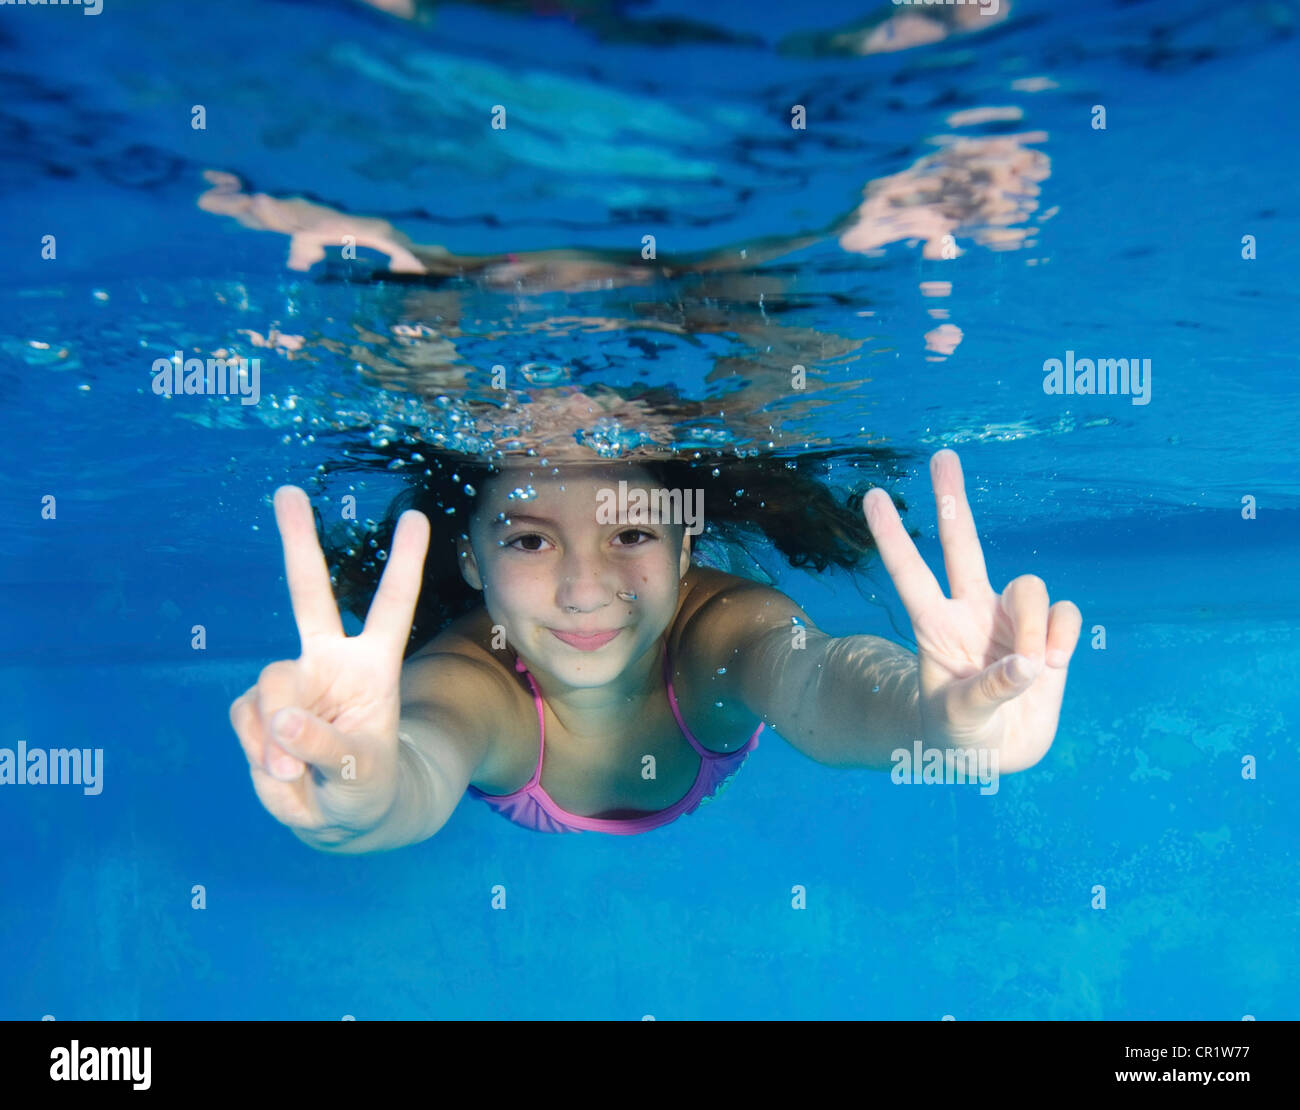 Smiling girl playing in swimming pool - Stock Image